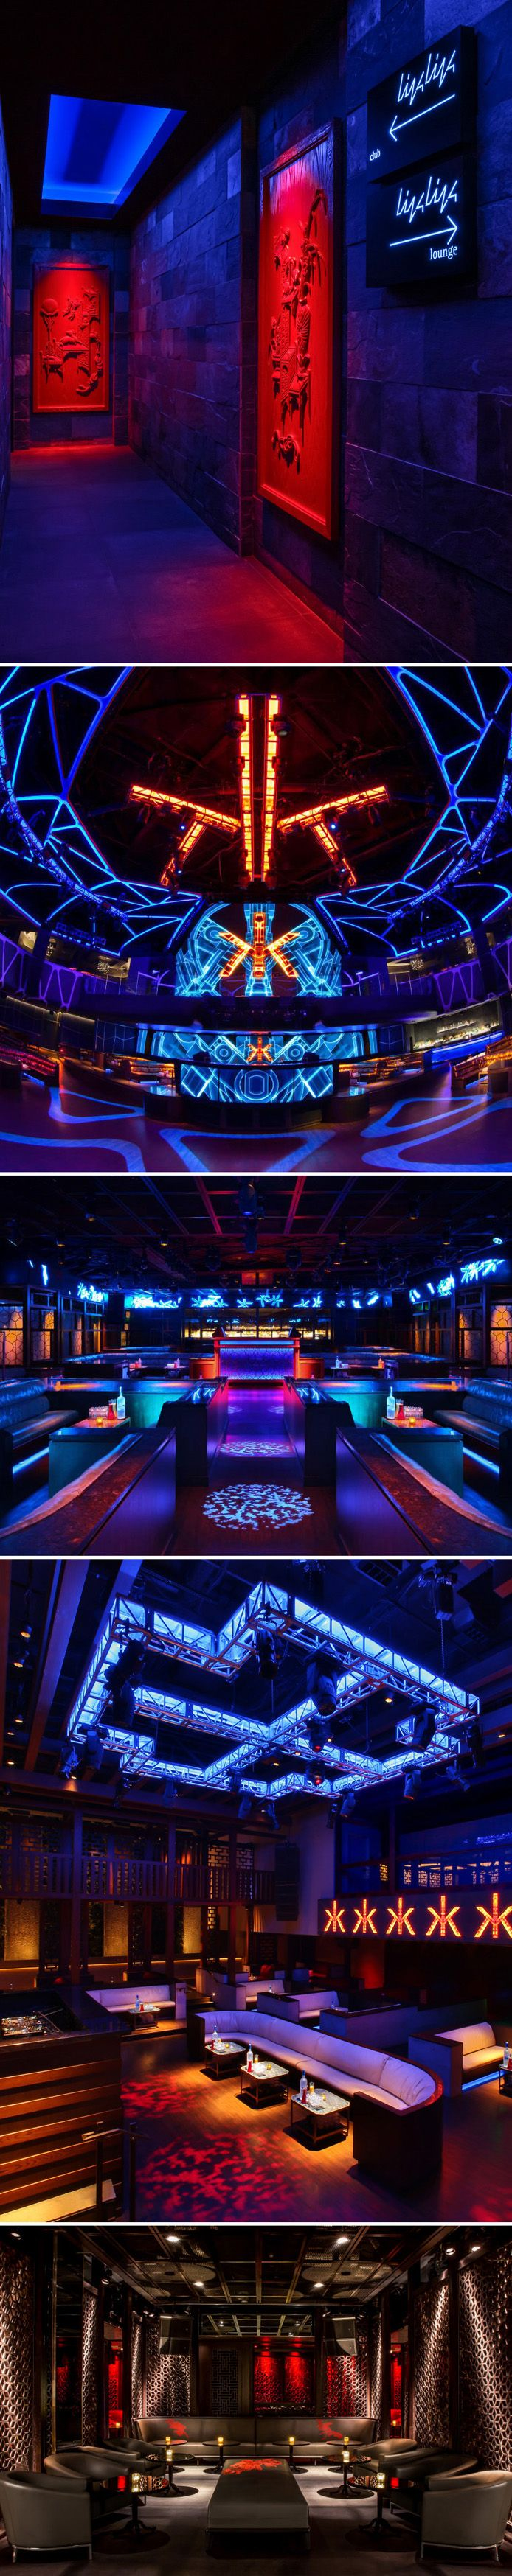 Hakkasan Las Vegas Restaurant and Nightclub - (Gilles et Boissier www.inlist.com @InListApp [exclusive nightlife & events] [exclusive nightlife events])